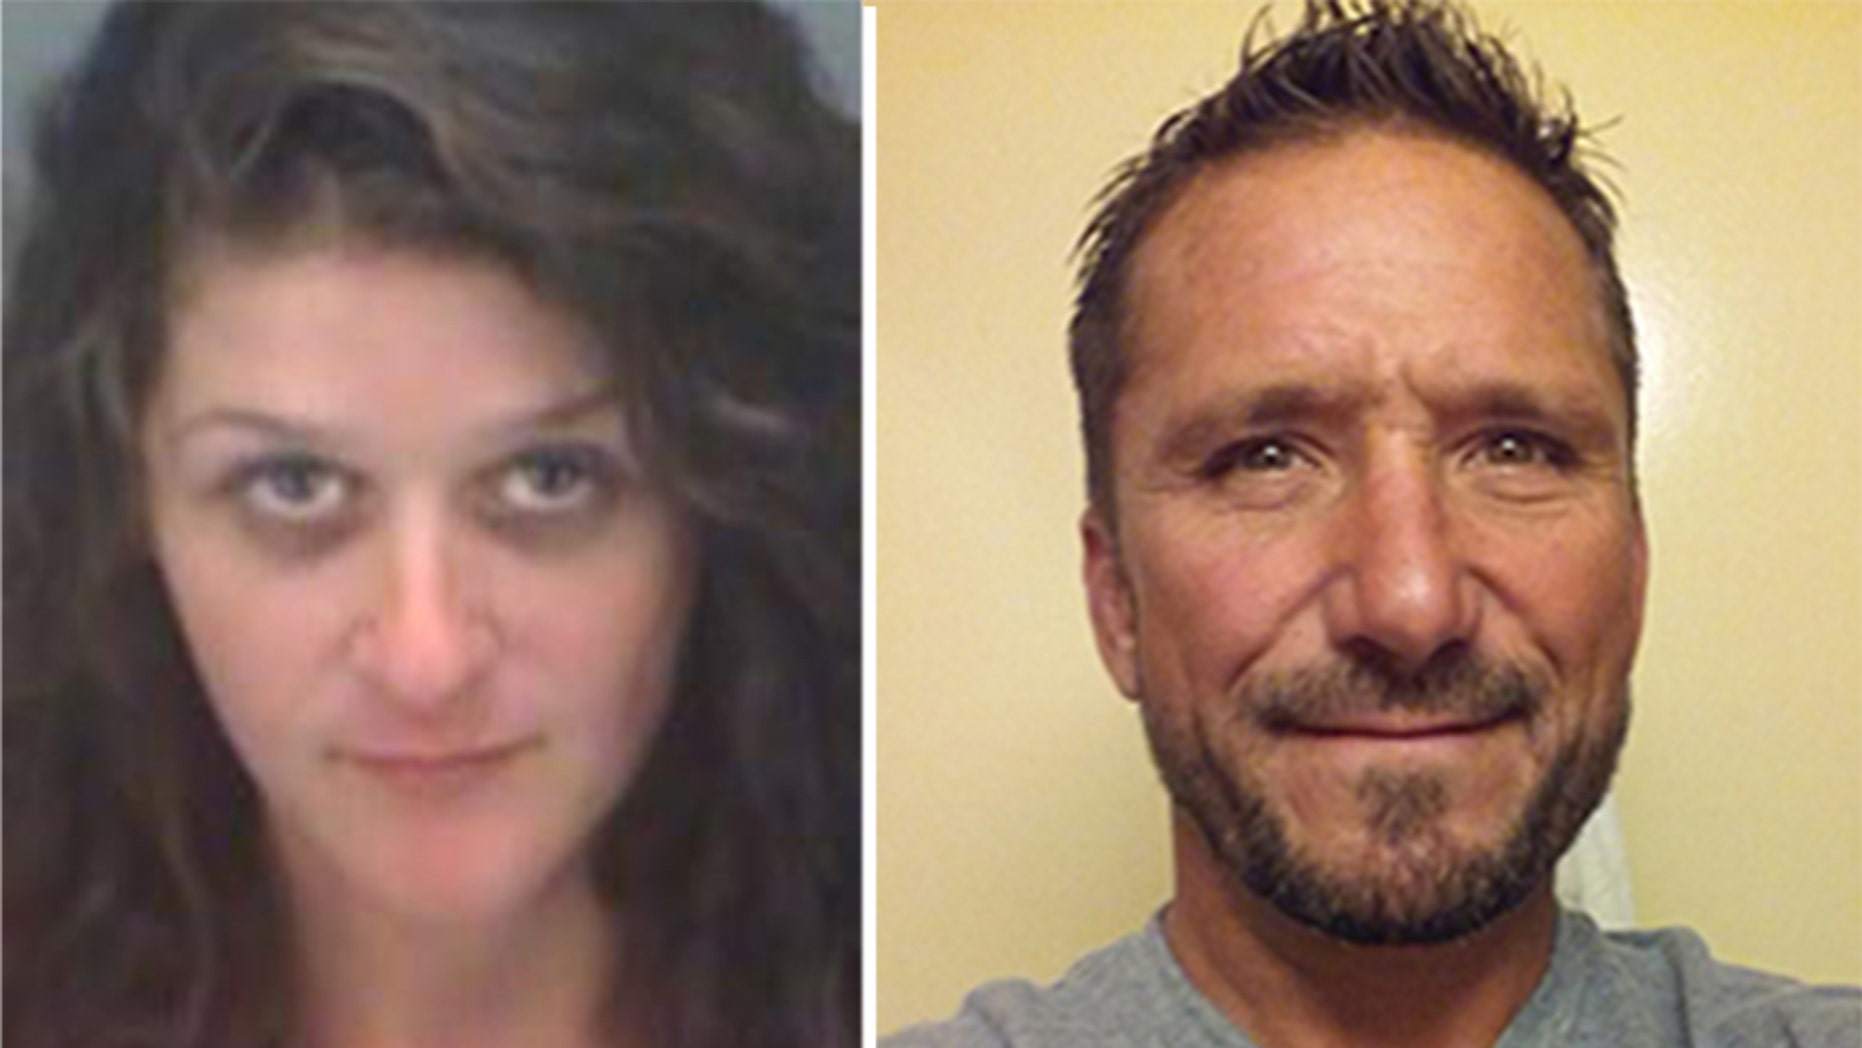 Alexandria Rowell, 26, of Winter Haven, and Jeffrey Kernan, 50, of Tampa, were arrested for having sex on a beach in front of families and children in Clearwater, Florida.